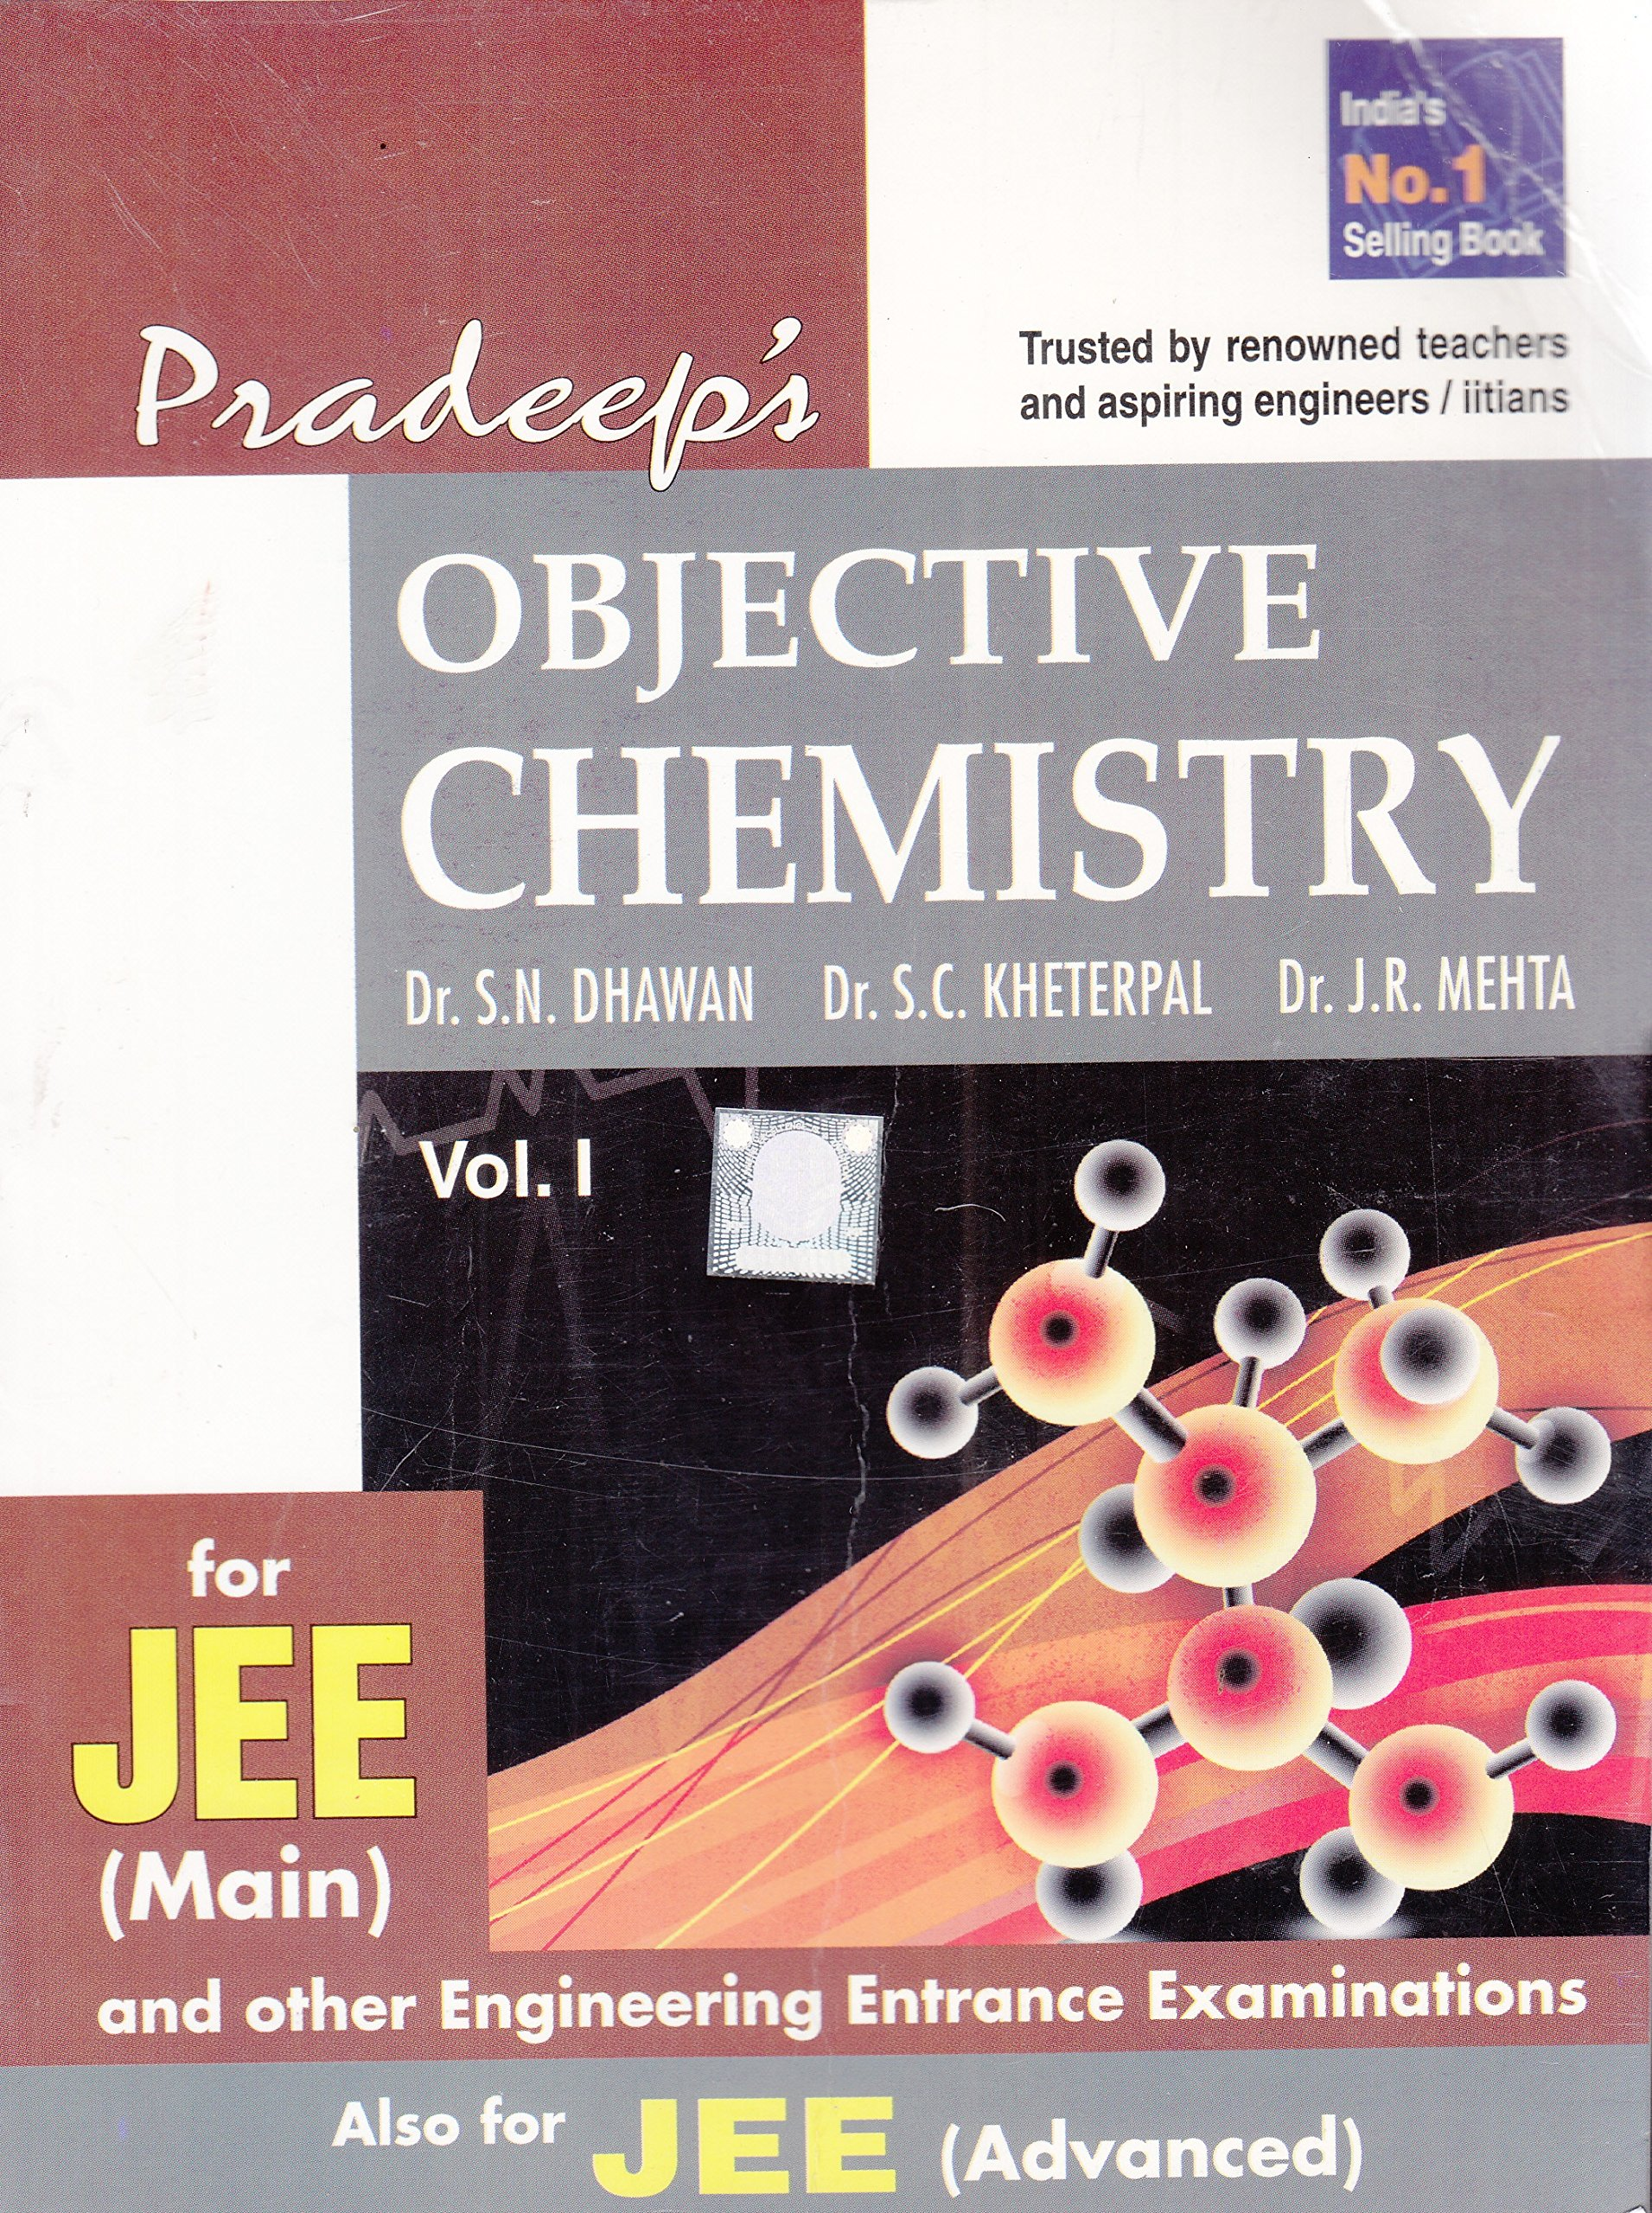 Buy pradeep s objective chemistry for jee main vol i ii book online at low prices in india pradeep s objective chemistry for jee main vol